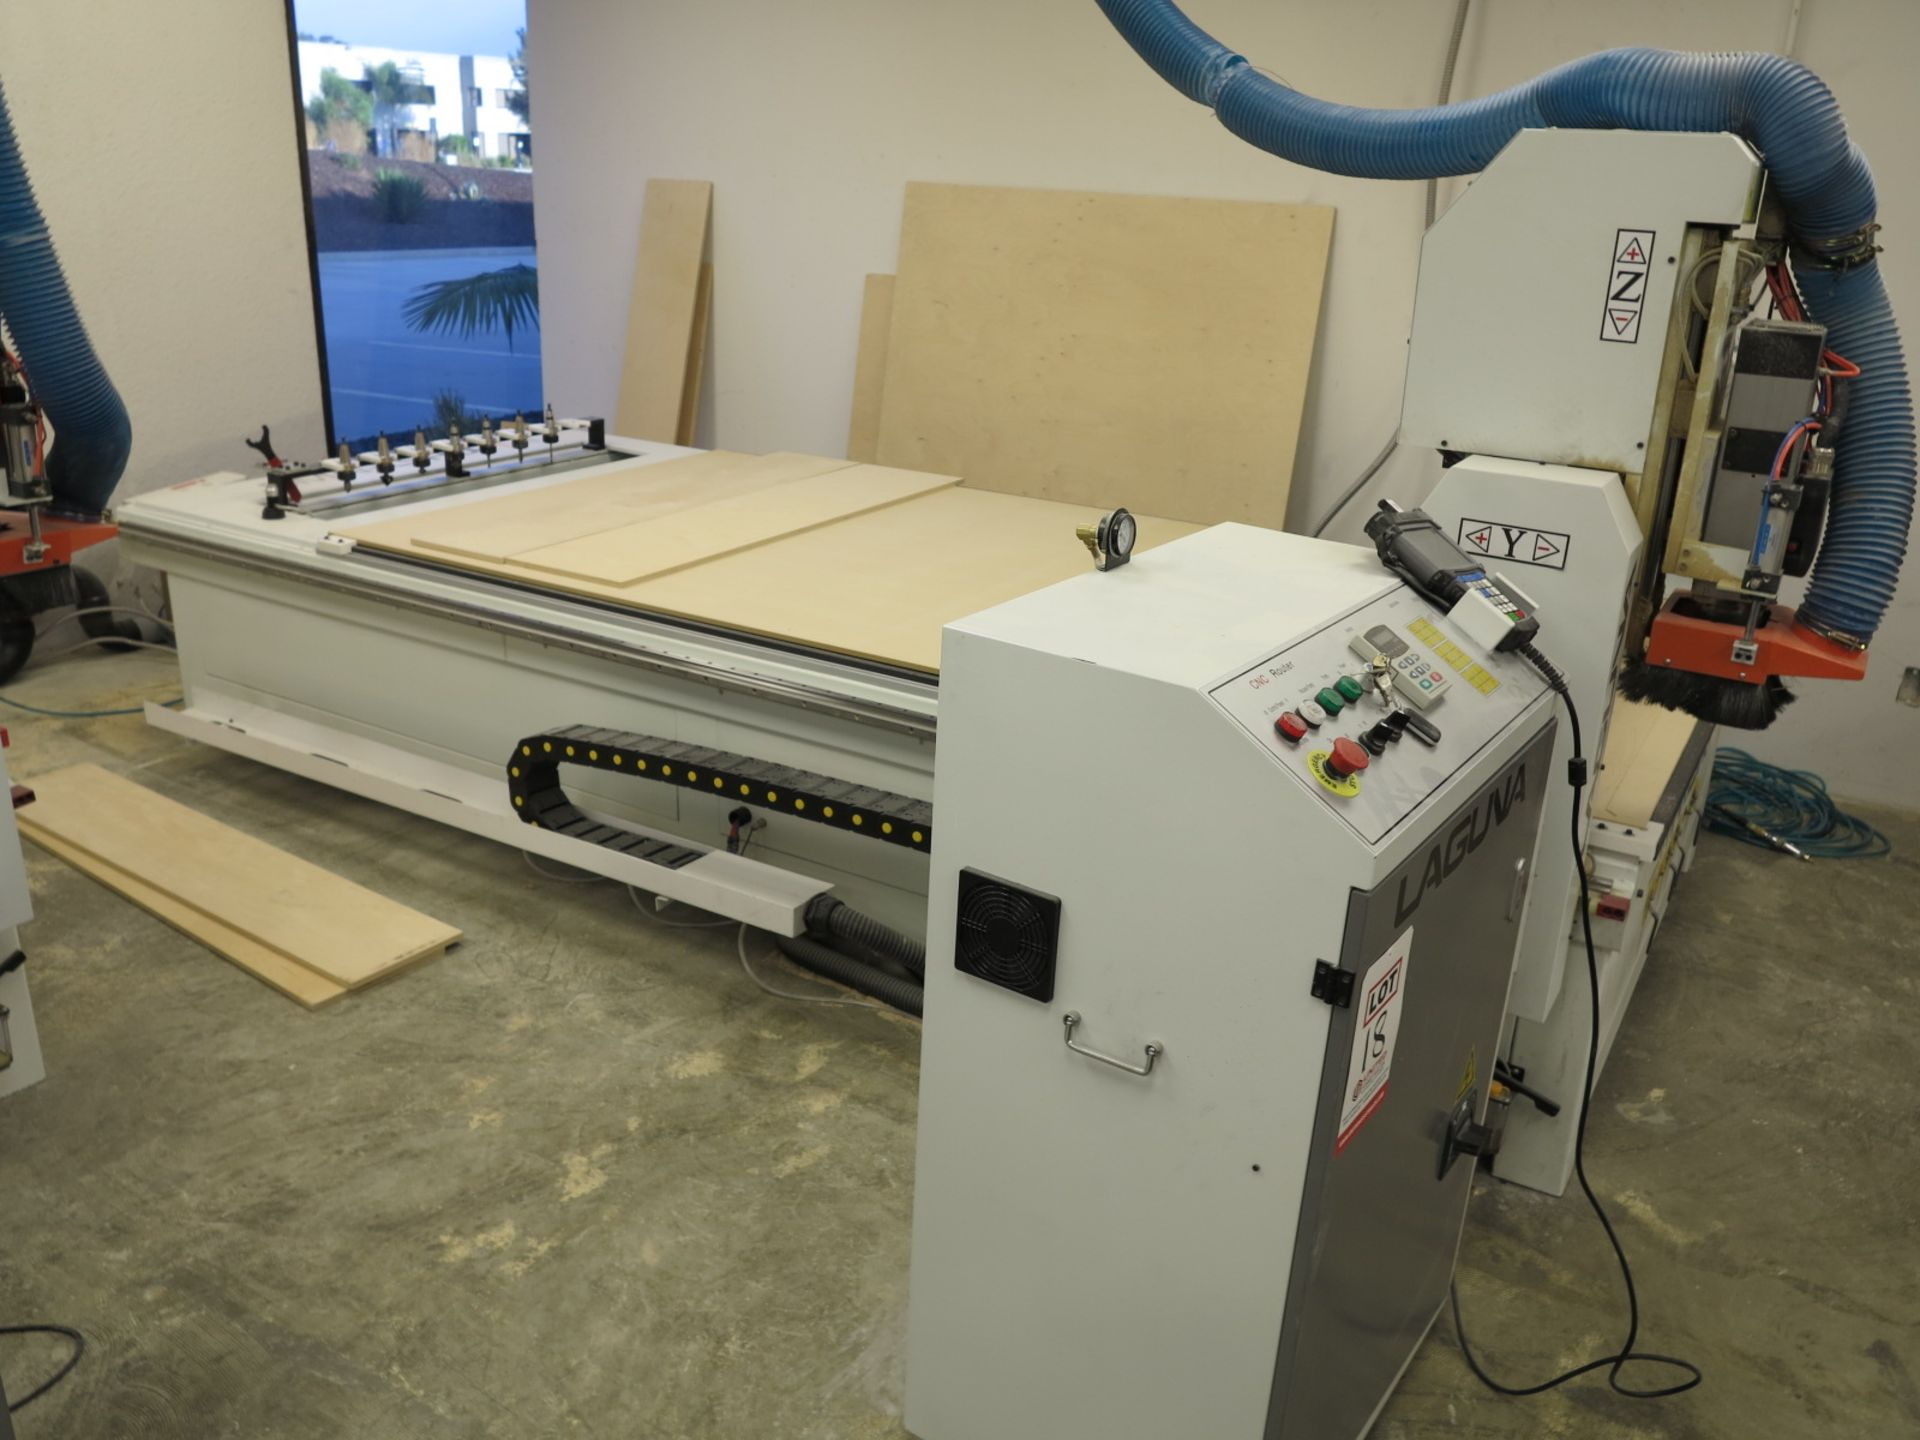 Lot 18 - 2018 LAGUNA SMARTSHOP M CNC ROUTER, 8 POSITION AUTOMATIC TOOL RACK, SINGLE SPINDLE 5.5 HP HEAD, 10